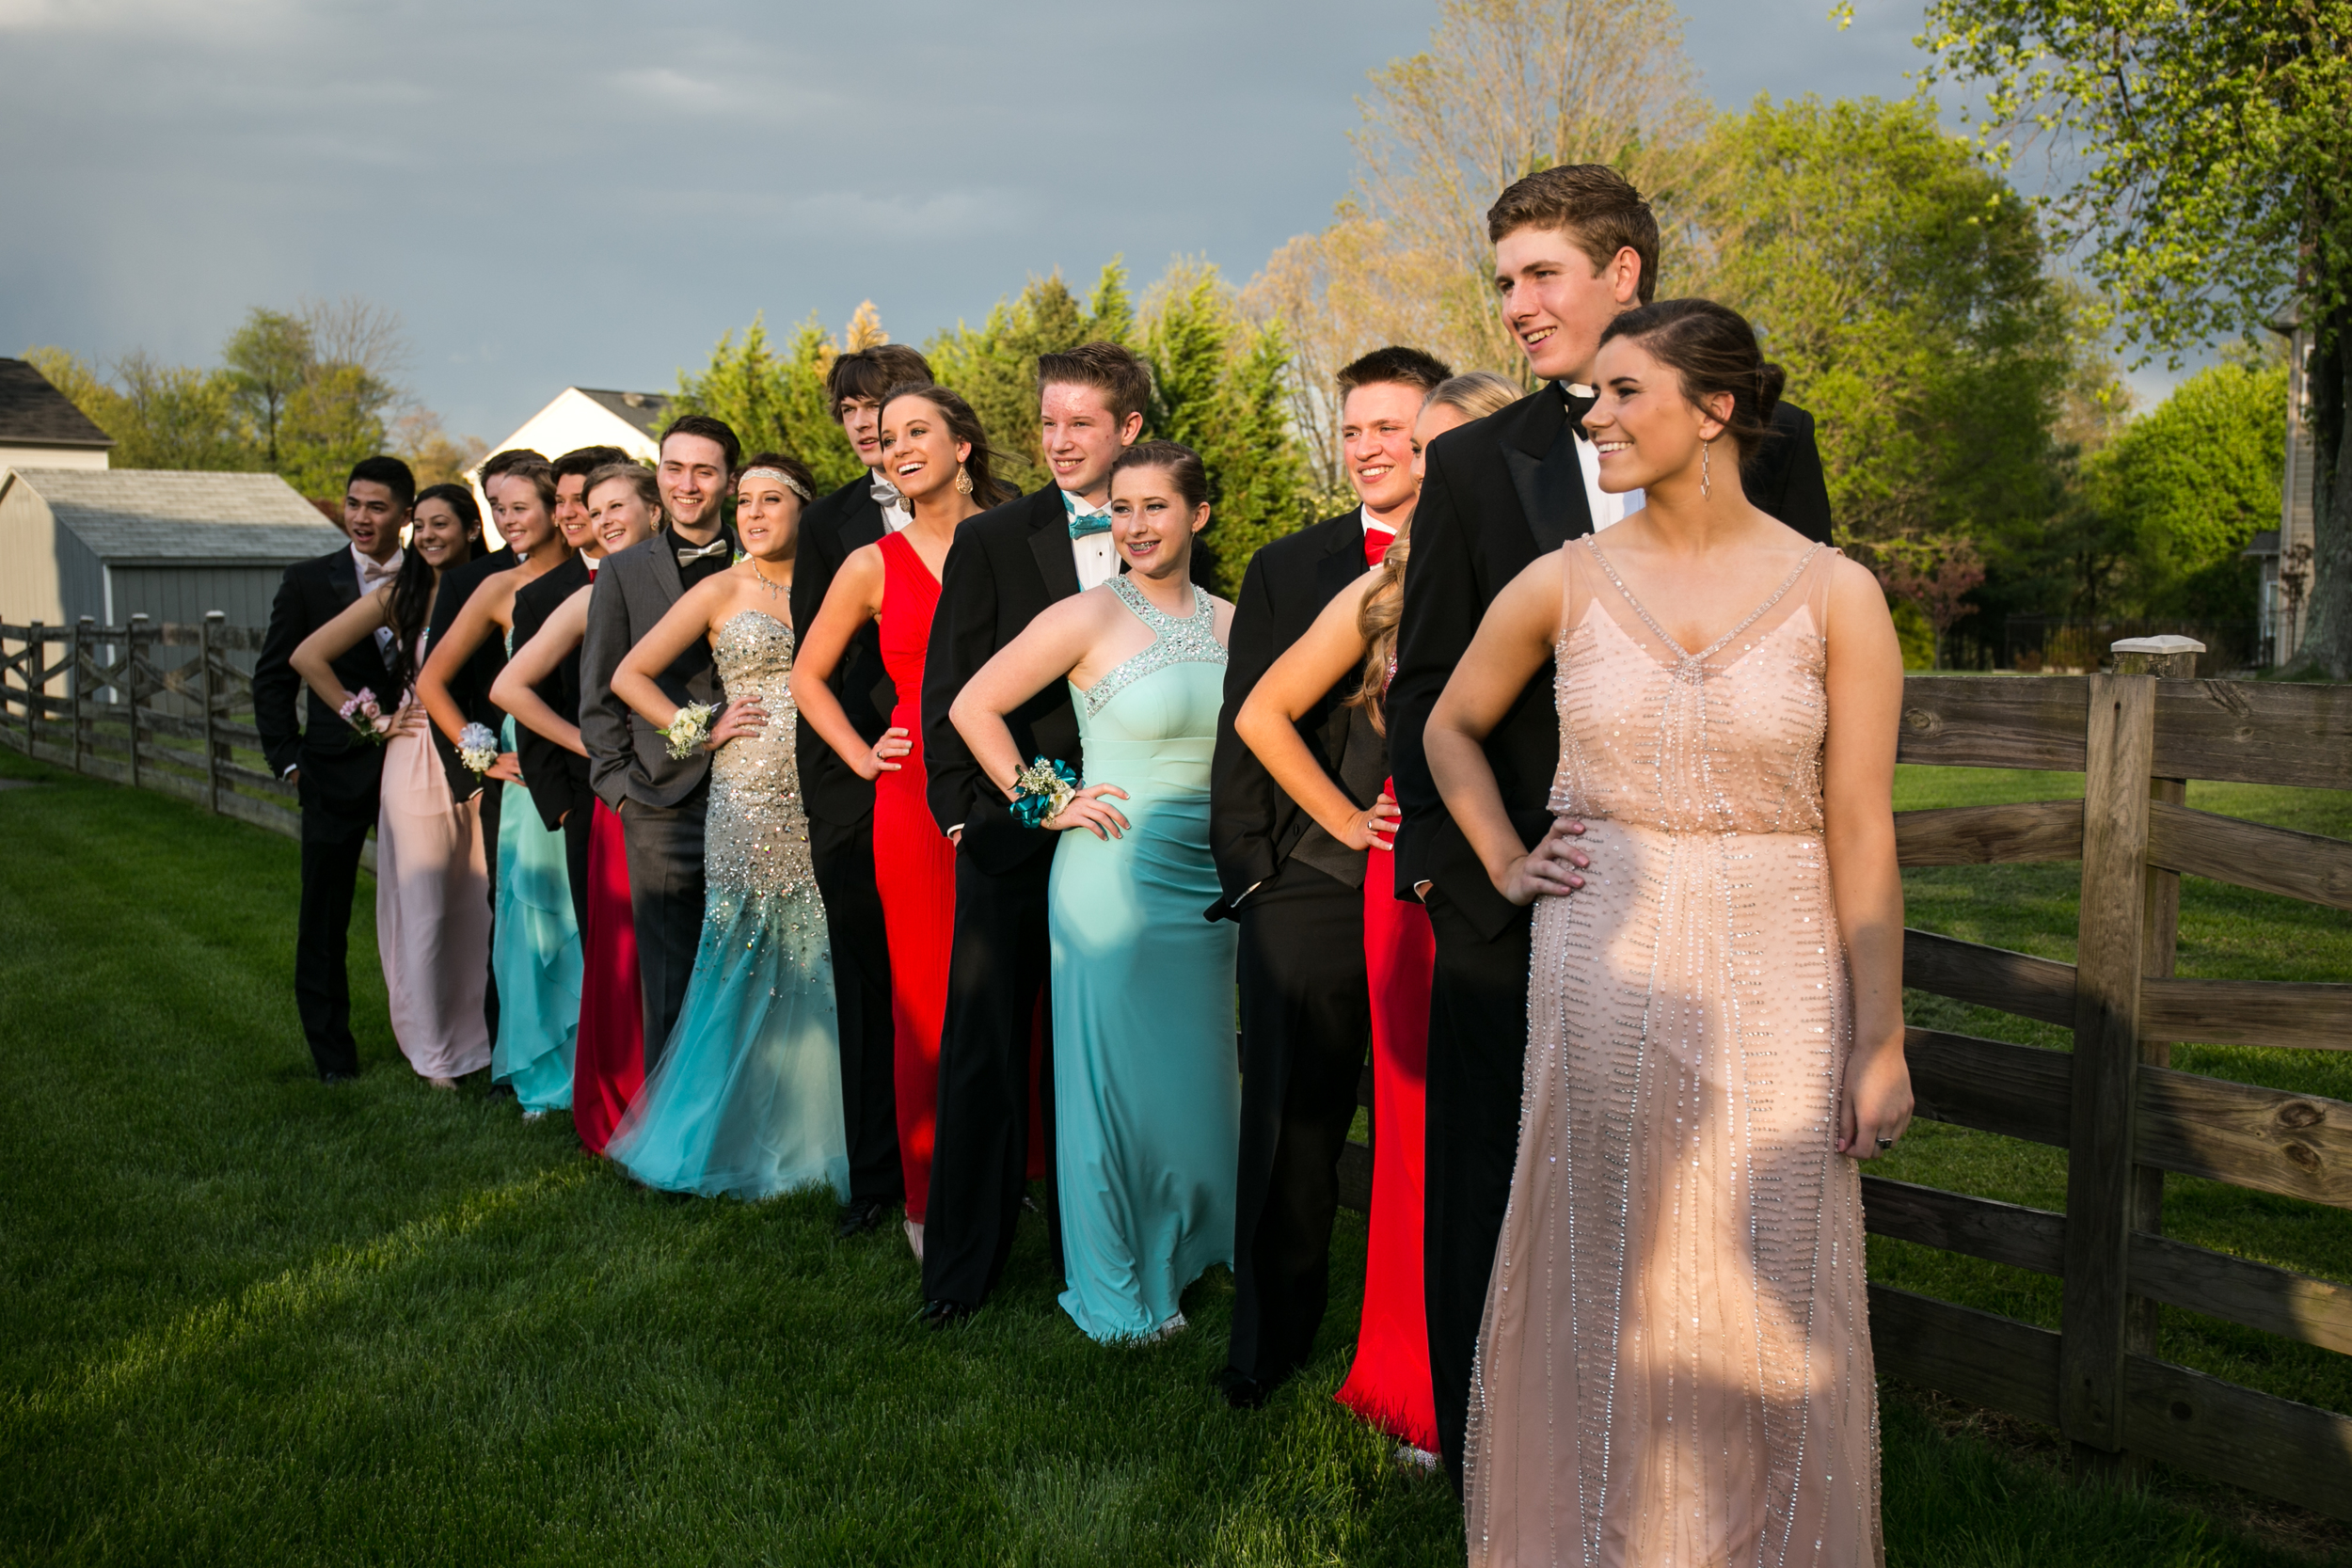 Mount-De-Sales-Pre-Prom-May-2014-39.jpg